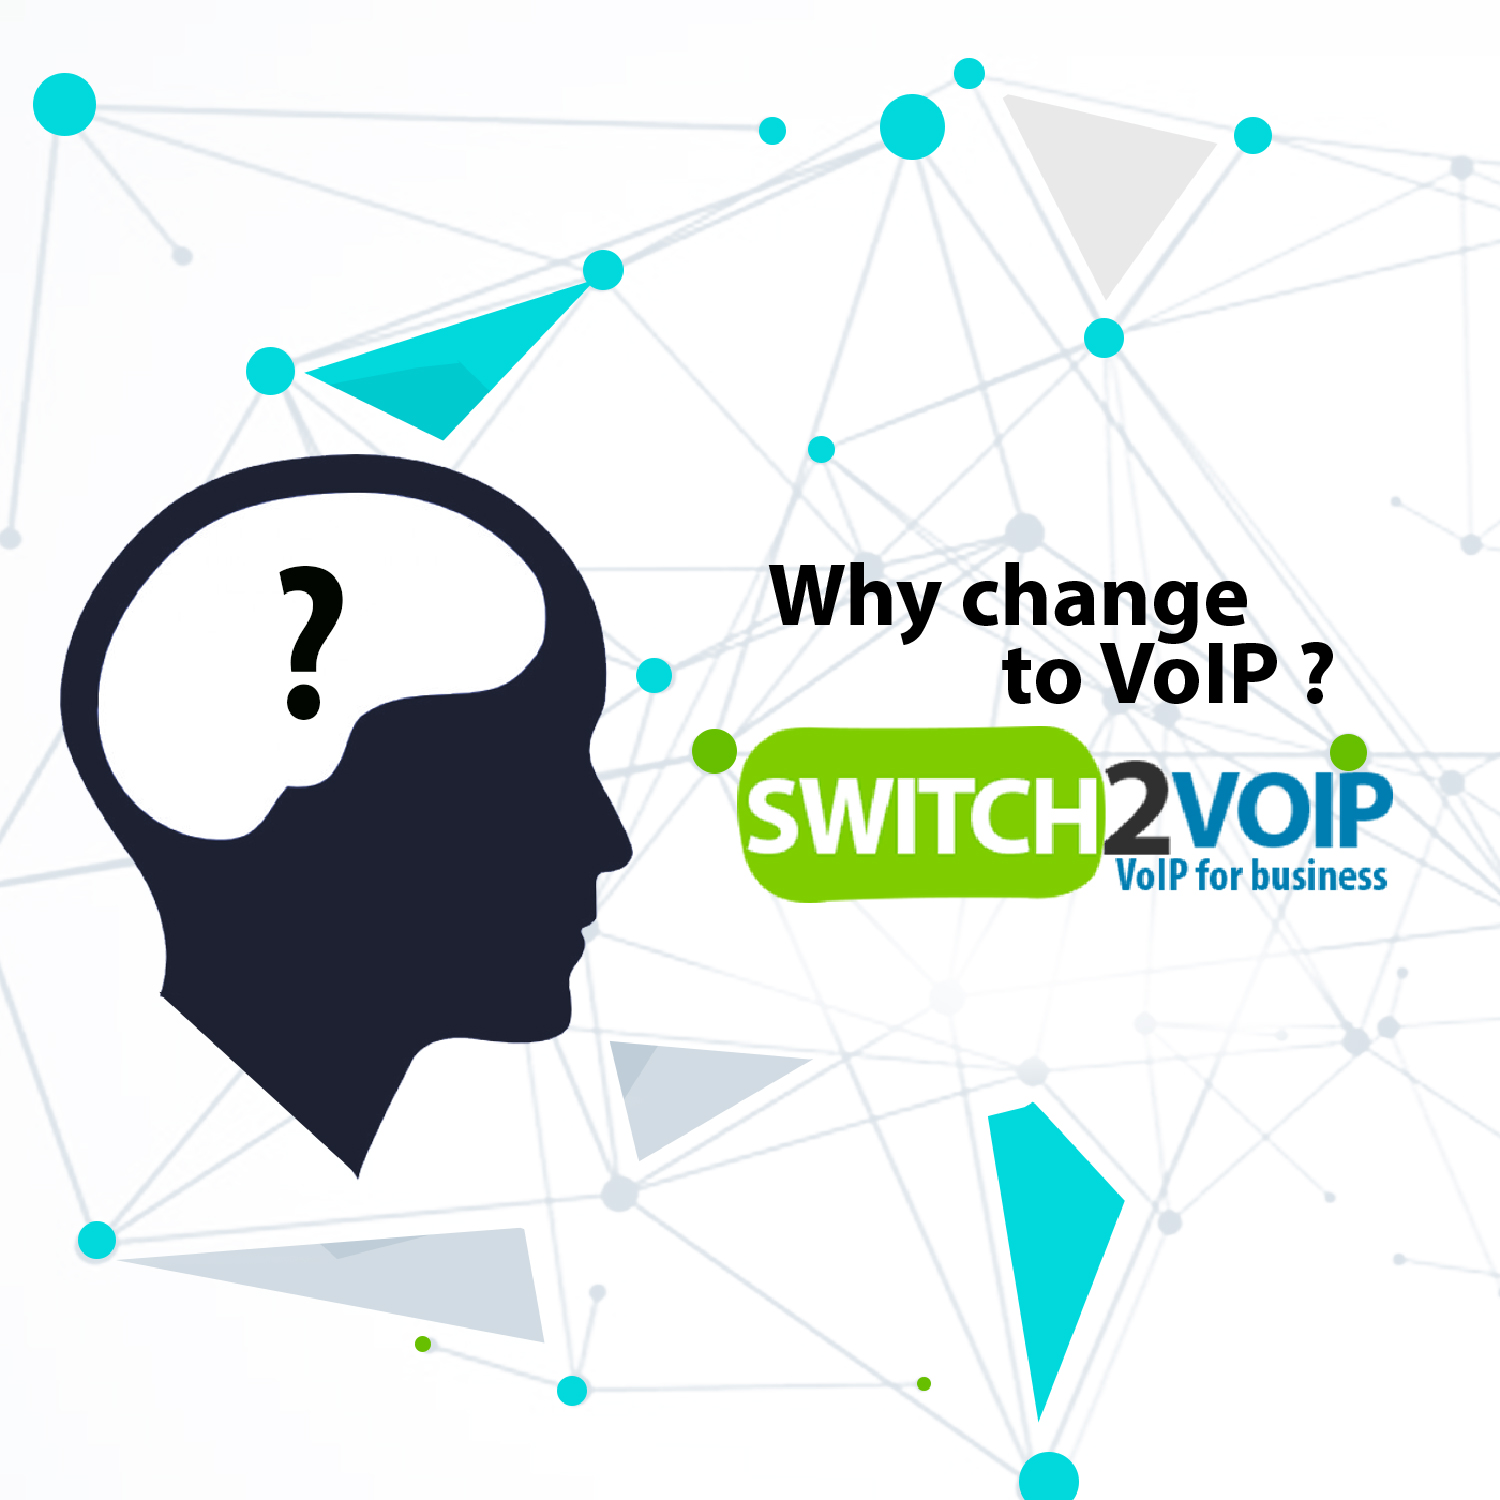 Why change to VoIP